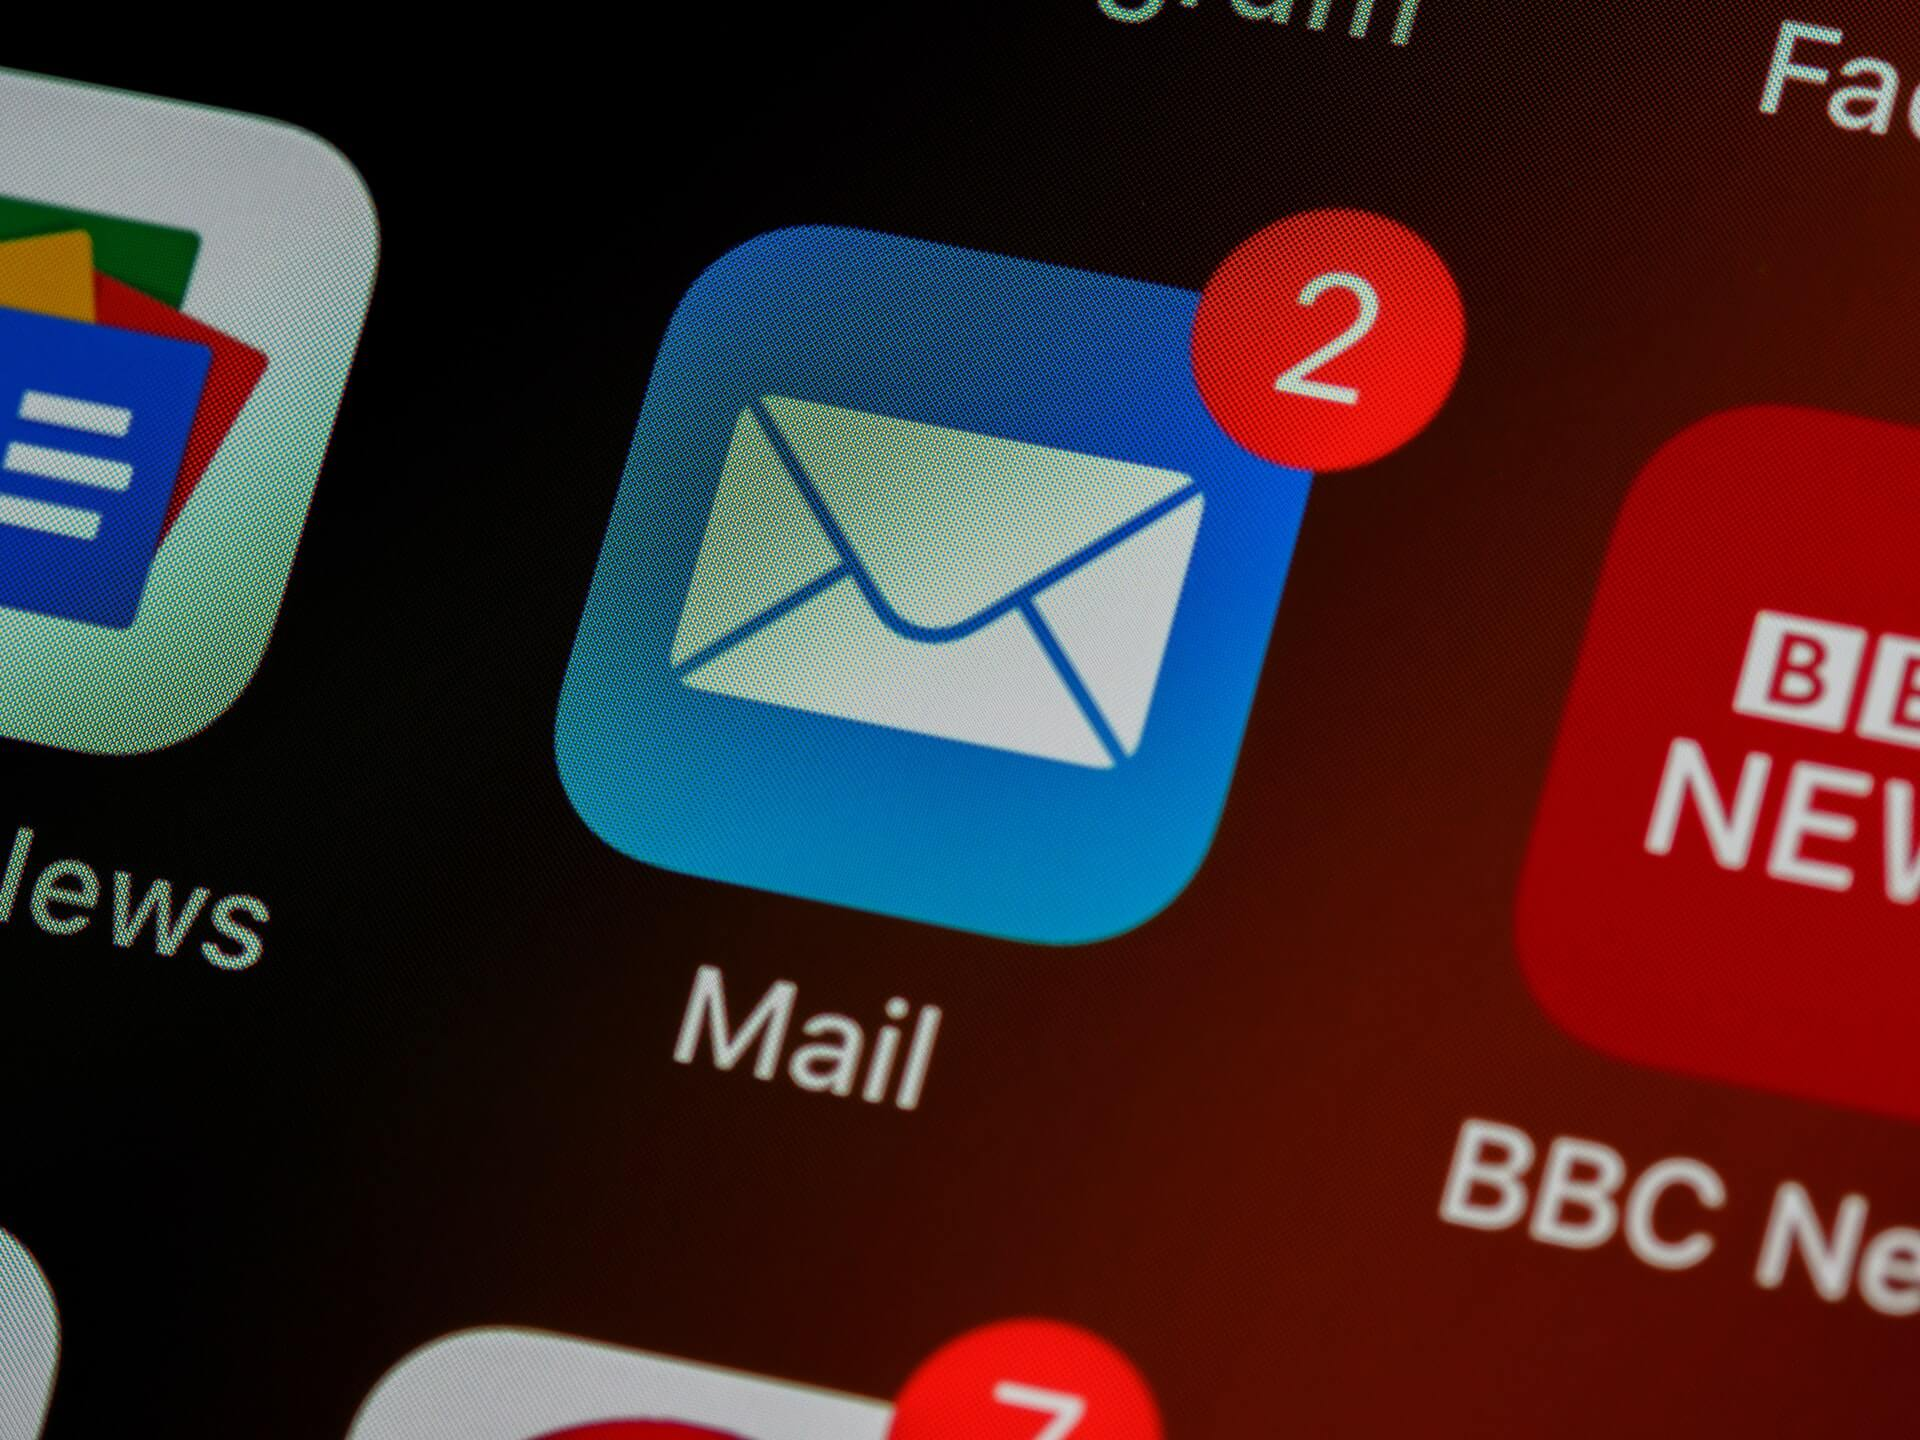 What Are the Benefits of Email Marketing Tools?